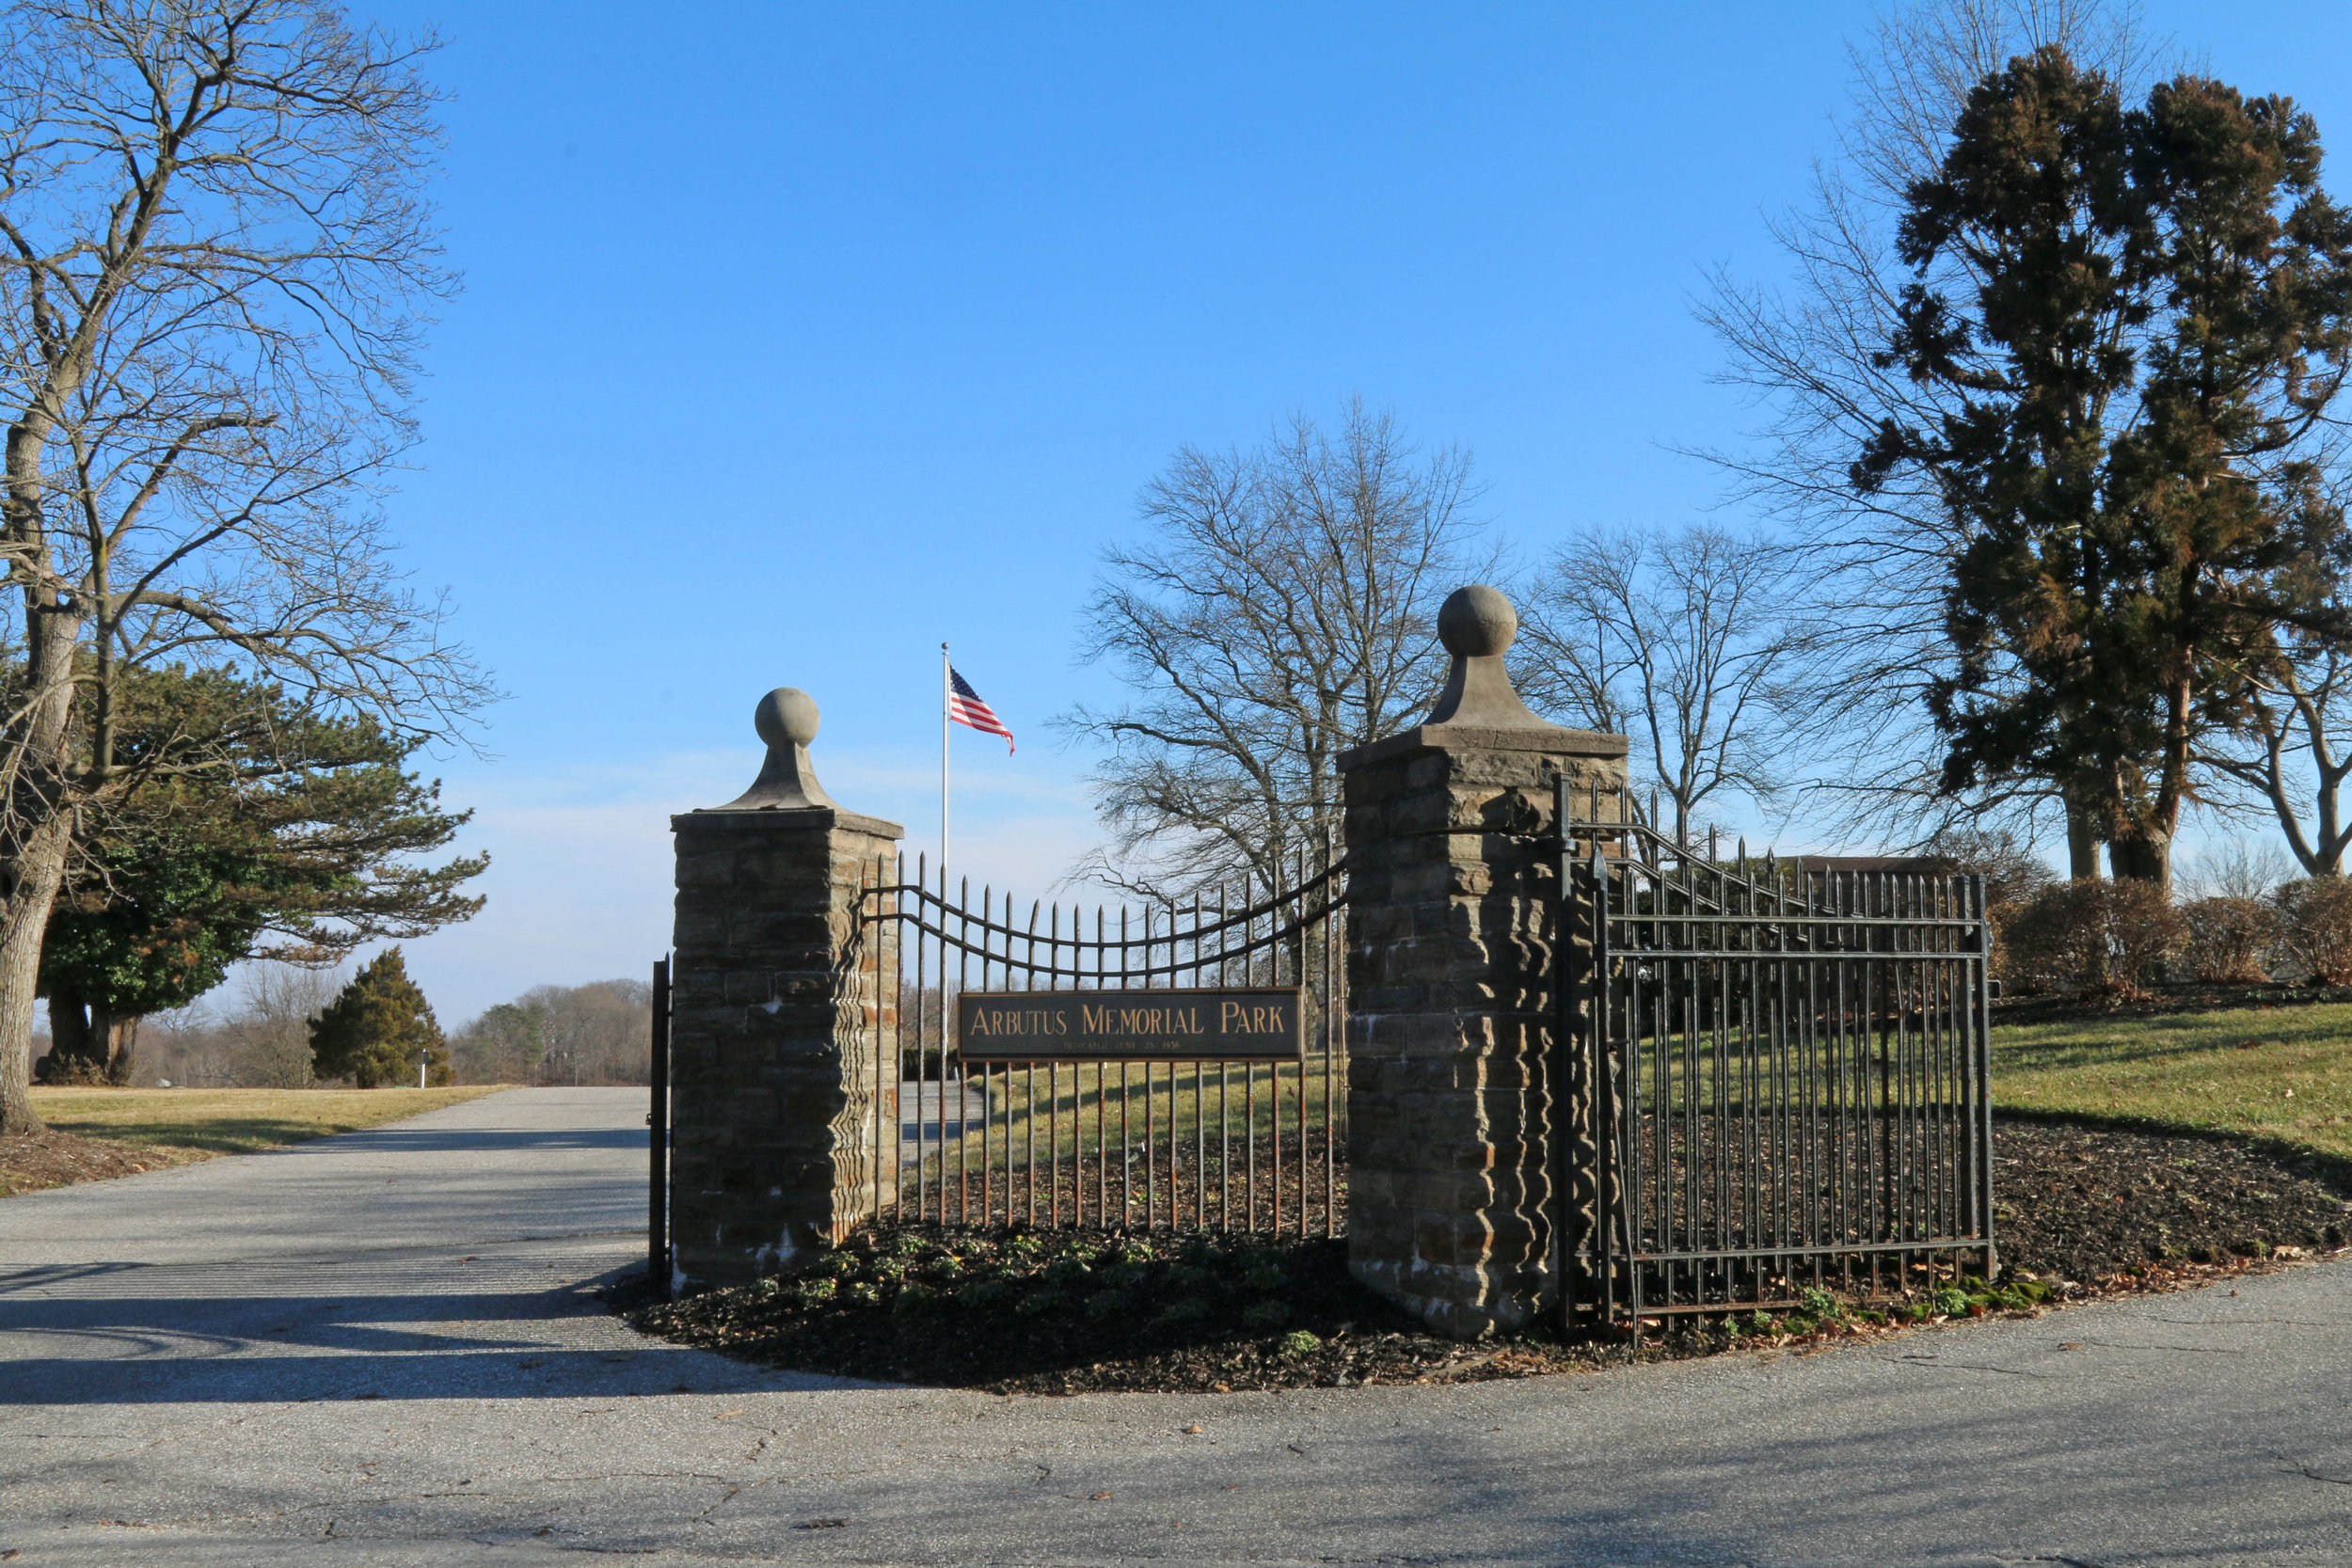 An American flag waves against blue skies beyond the entrance gate to Arbutus Memorial Park. Photo by Richard Berglund